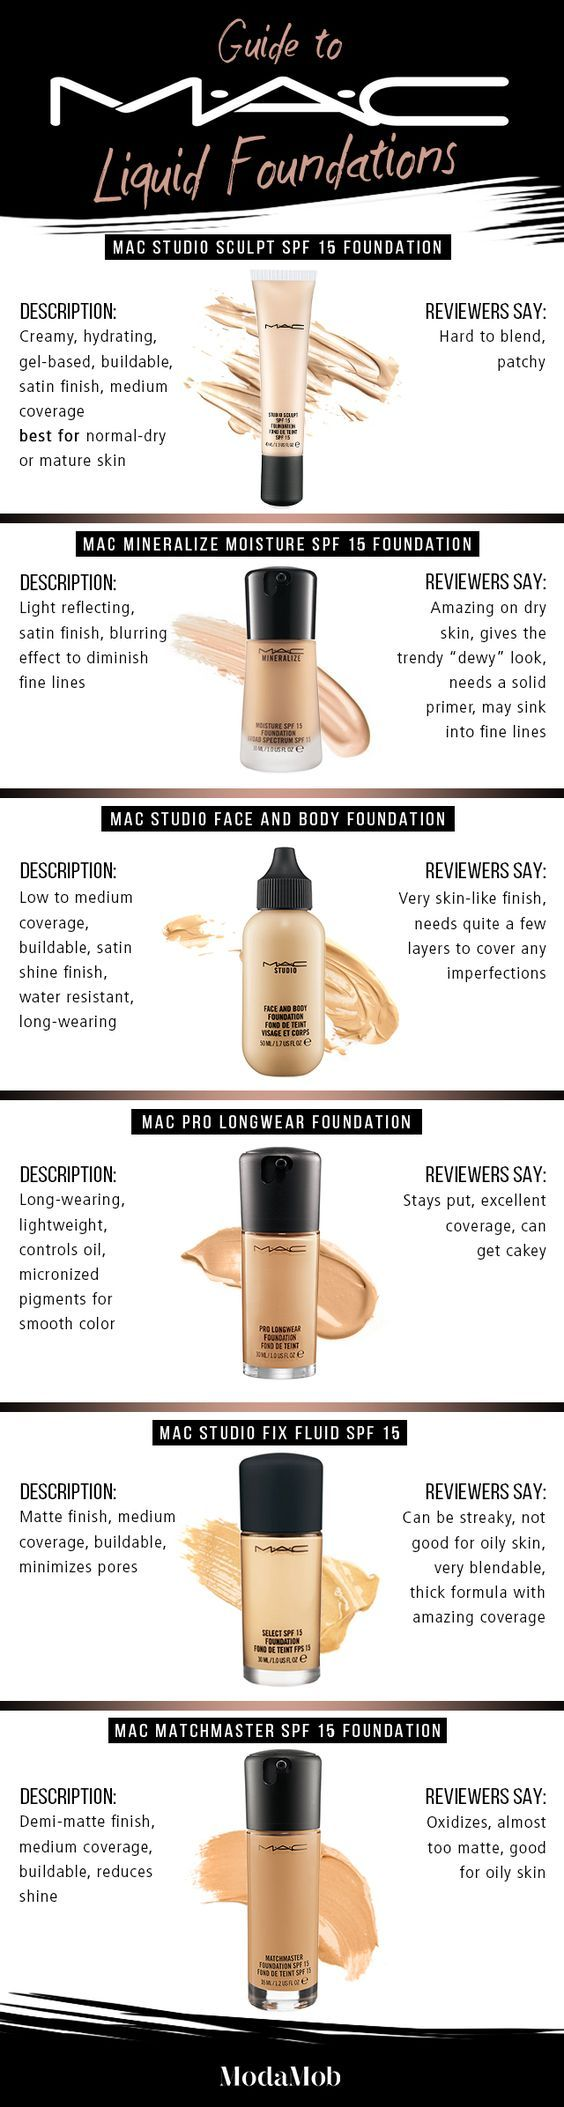 mac matchmaster foundation shade guide